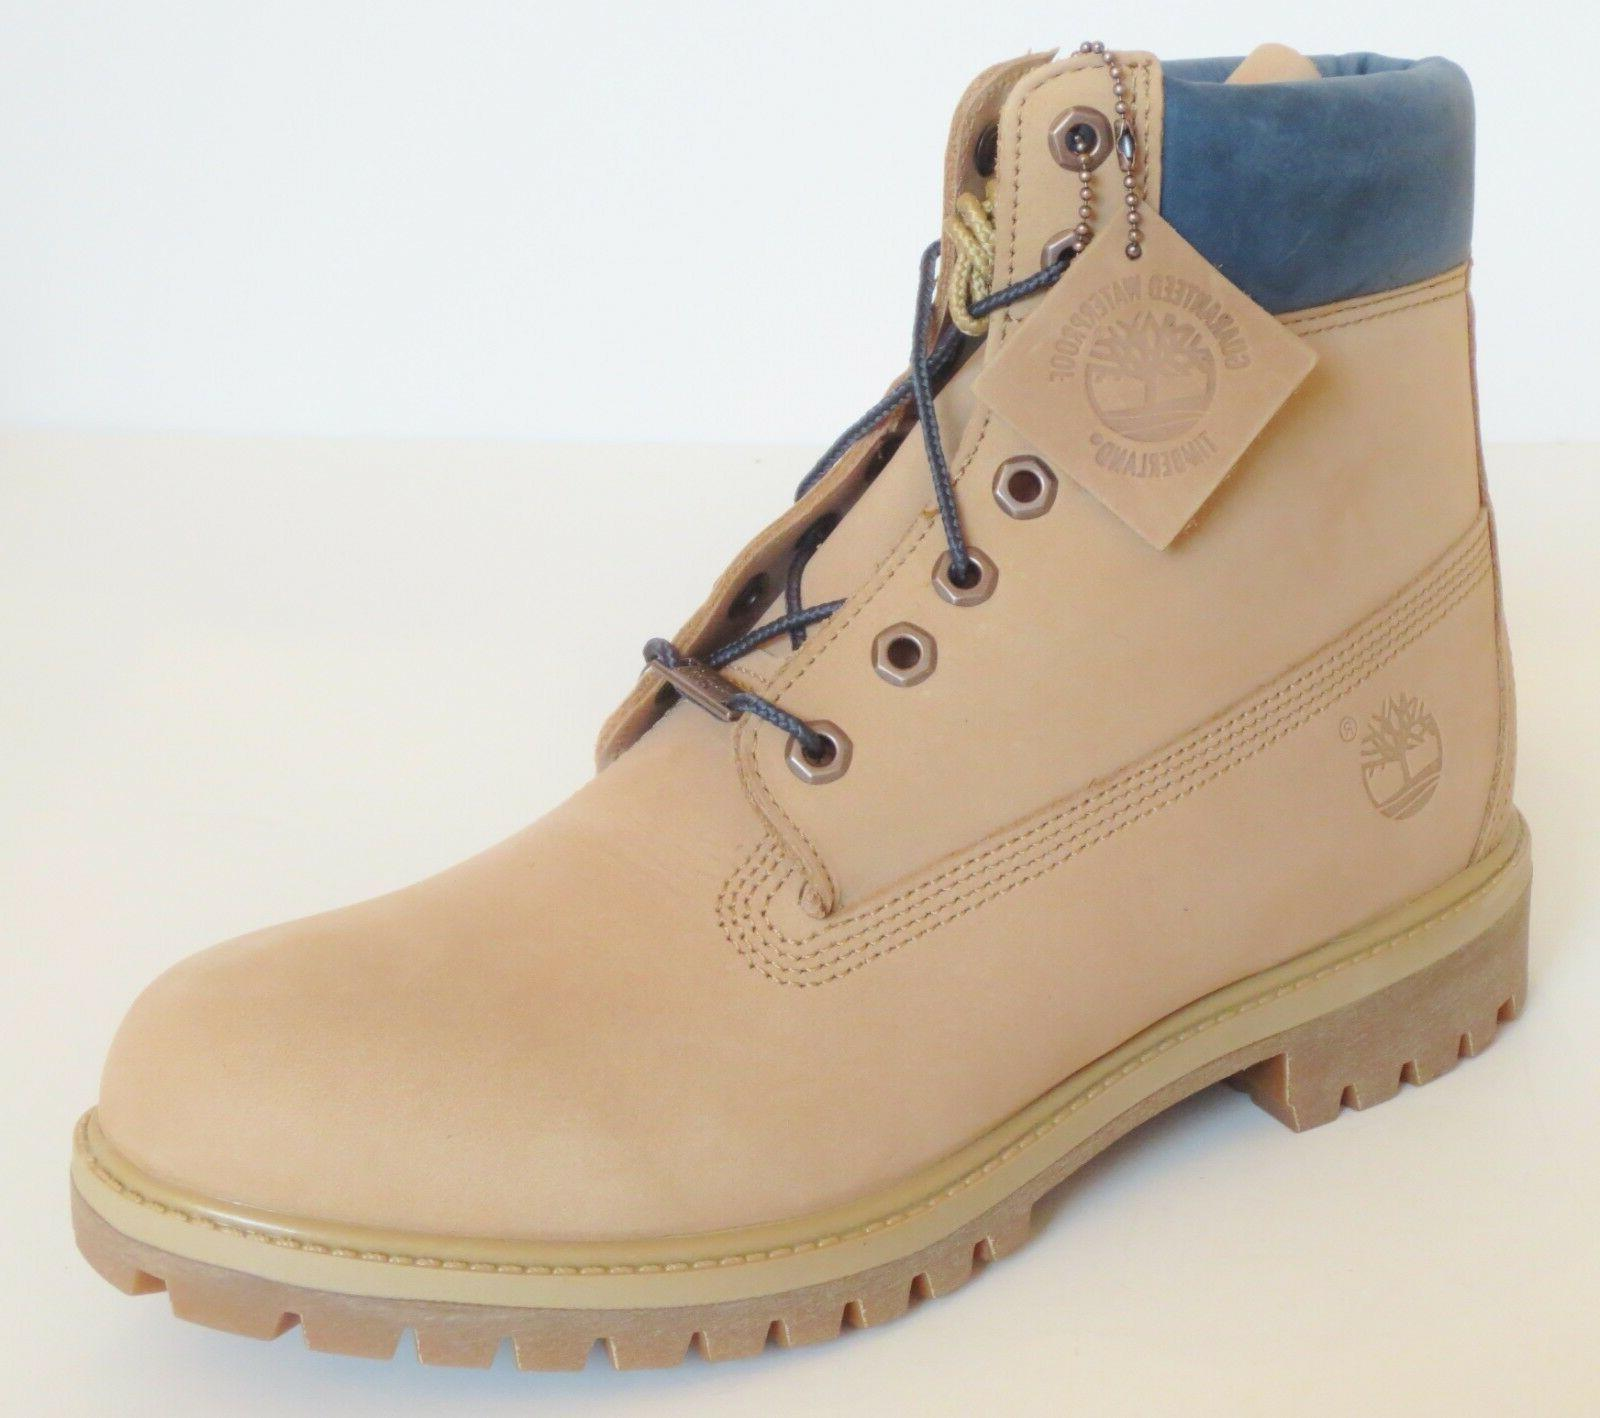 Timberland Premium Leather Work Boots Style Tan Sand